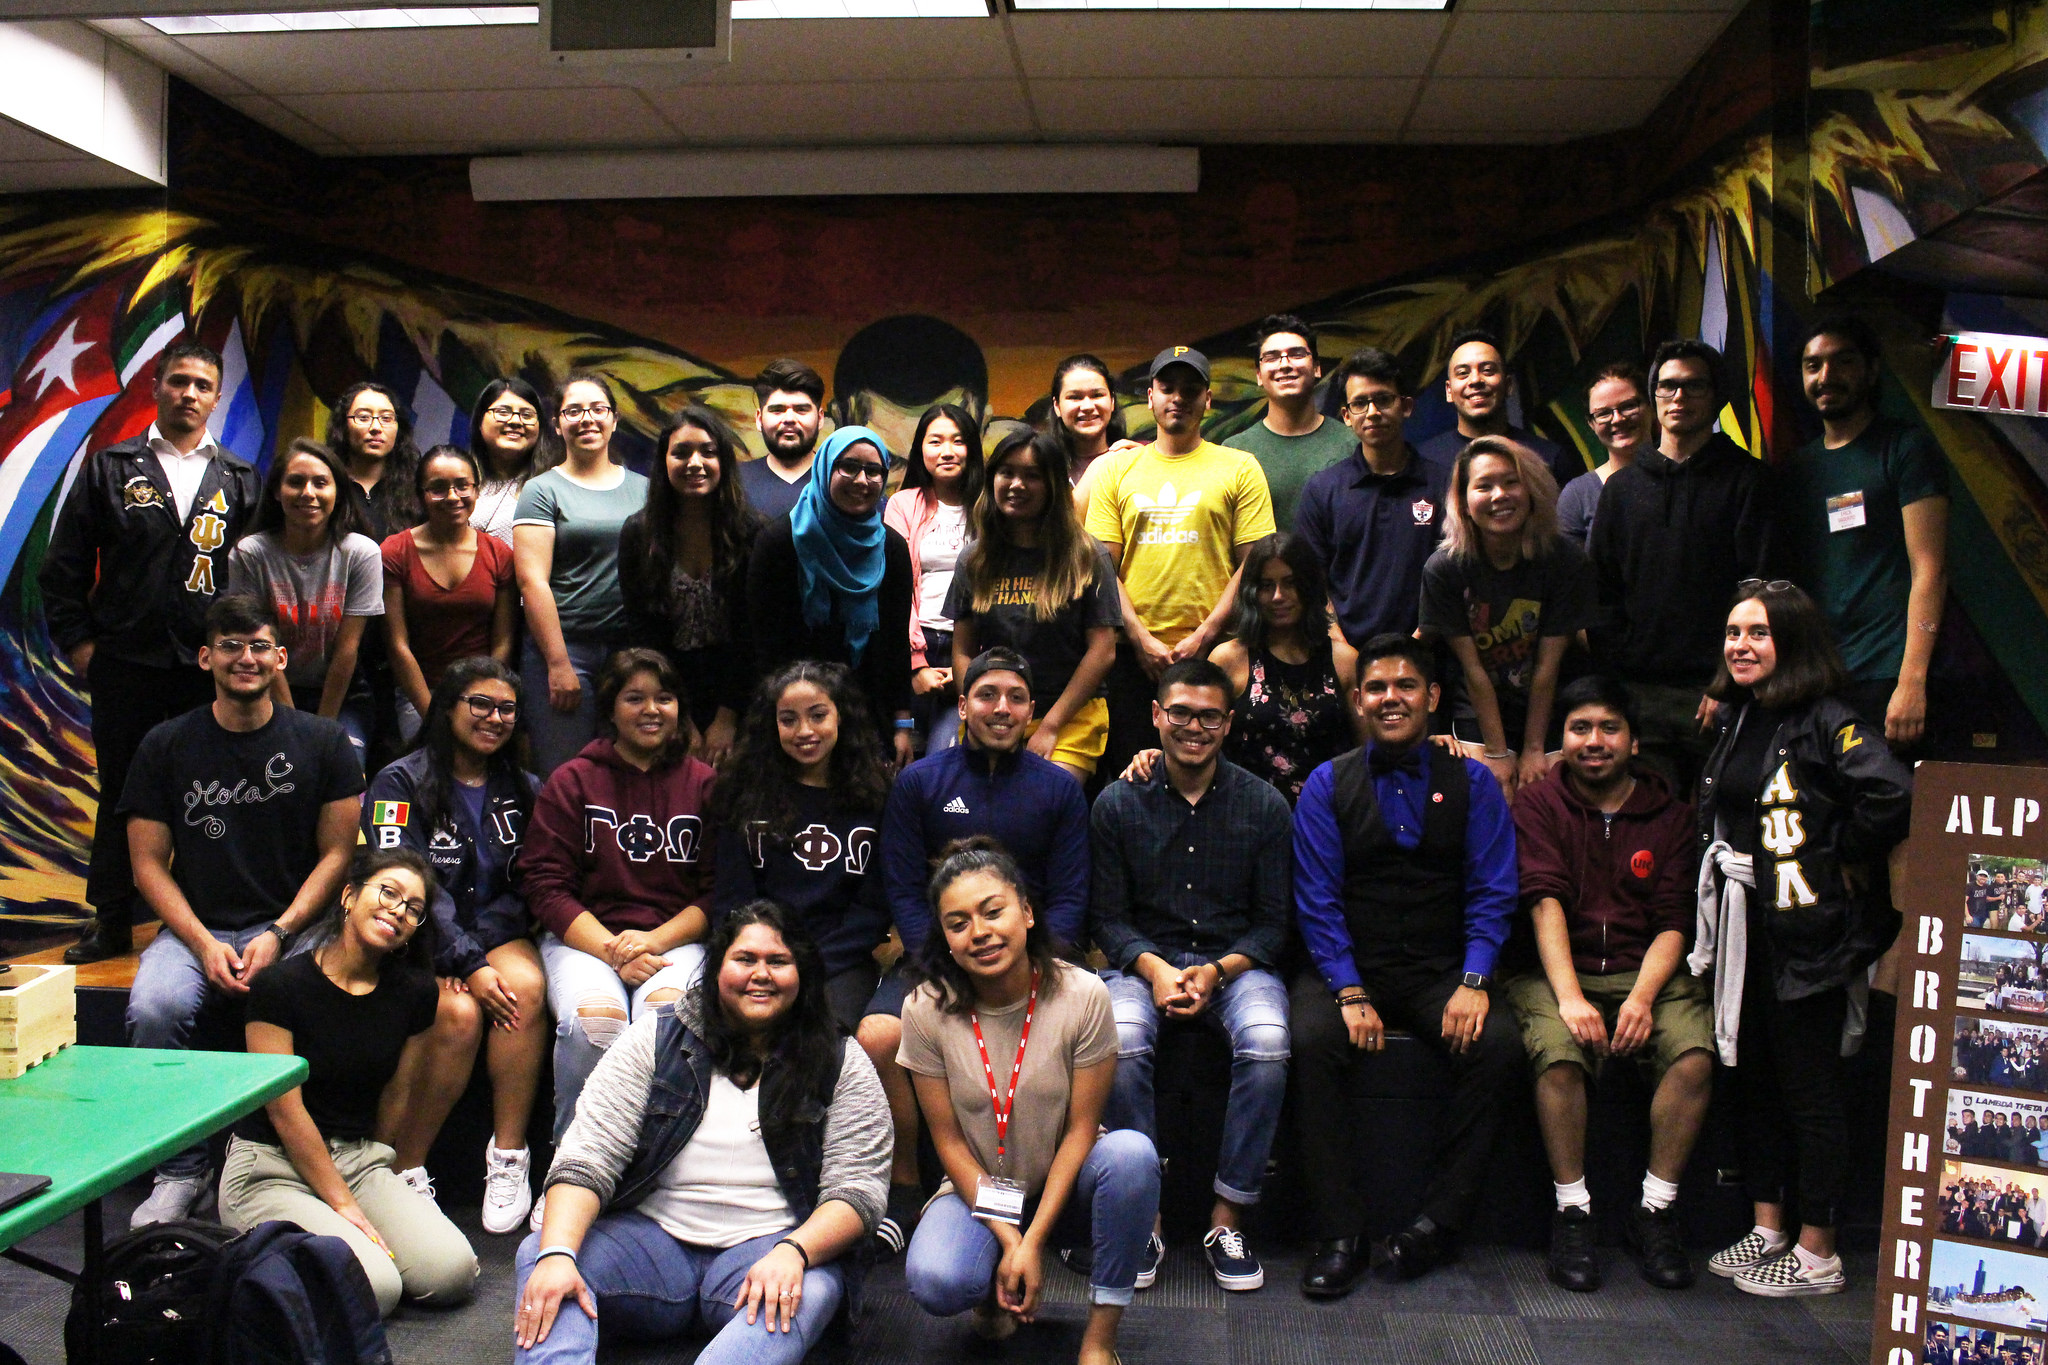 group picture of student org members